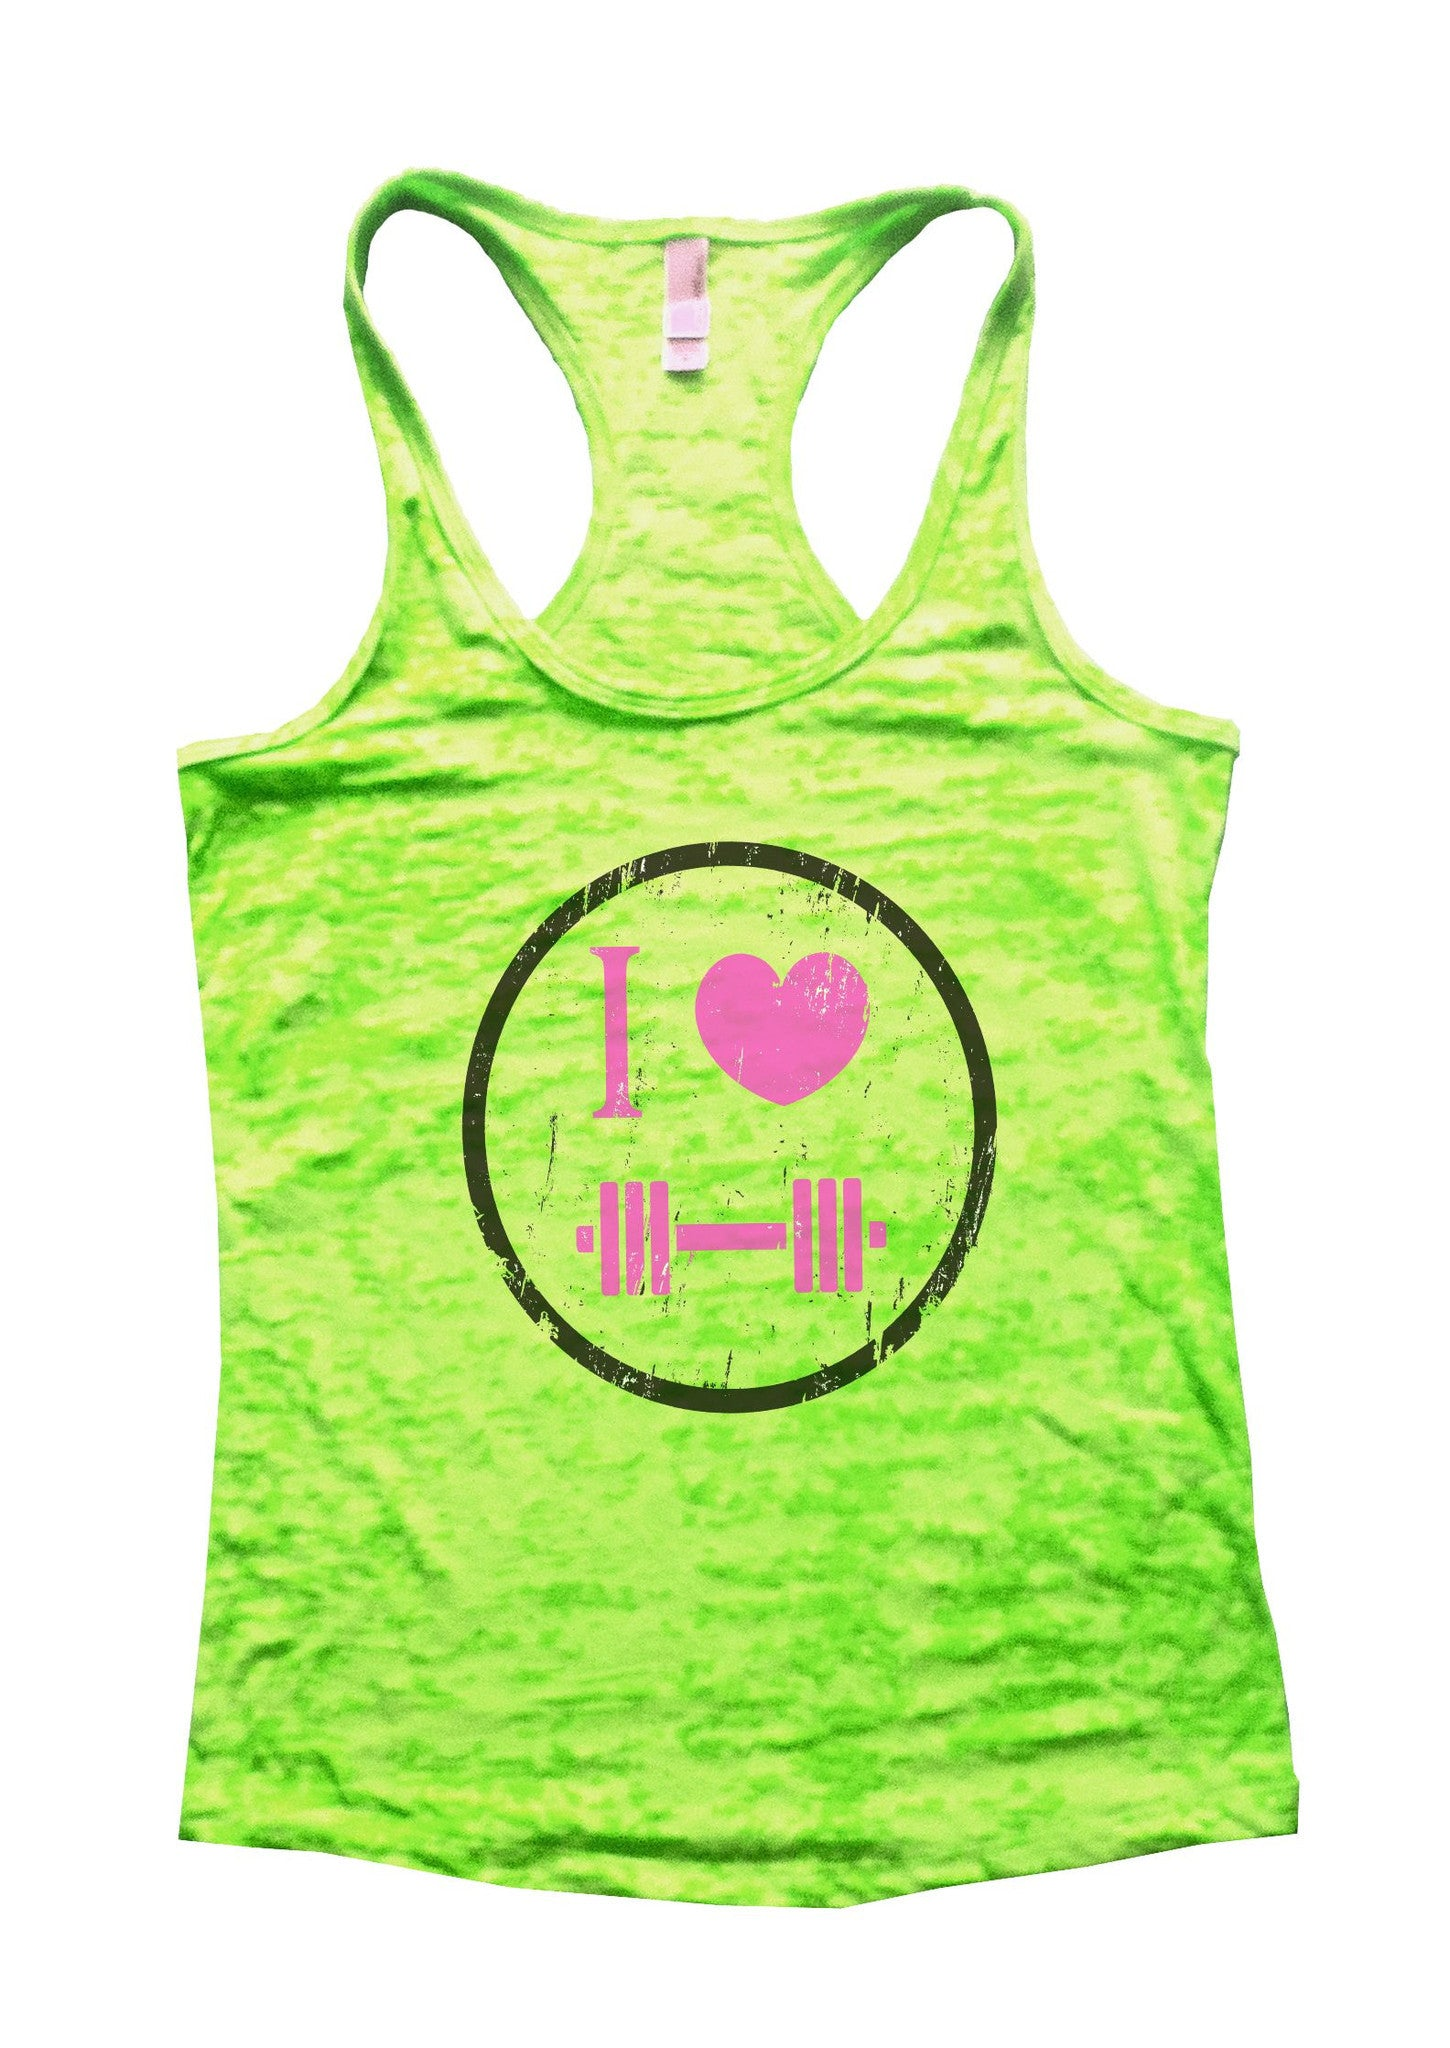 I Love Weightlifting Burnout Tank Top By BurnoutTankTops.com - 726 - Funny Shirts Tank Tops Burnouts and Triblends  - 3